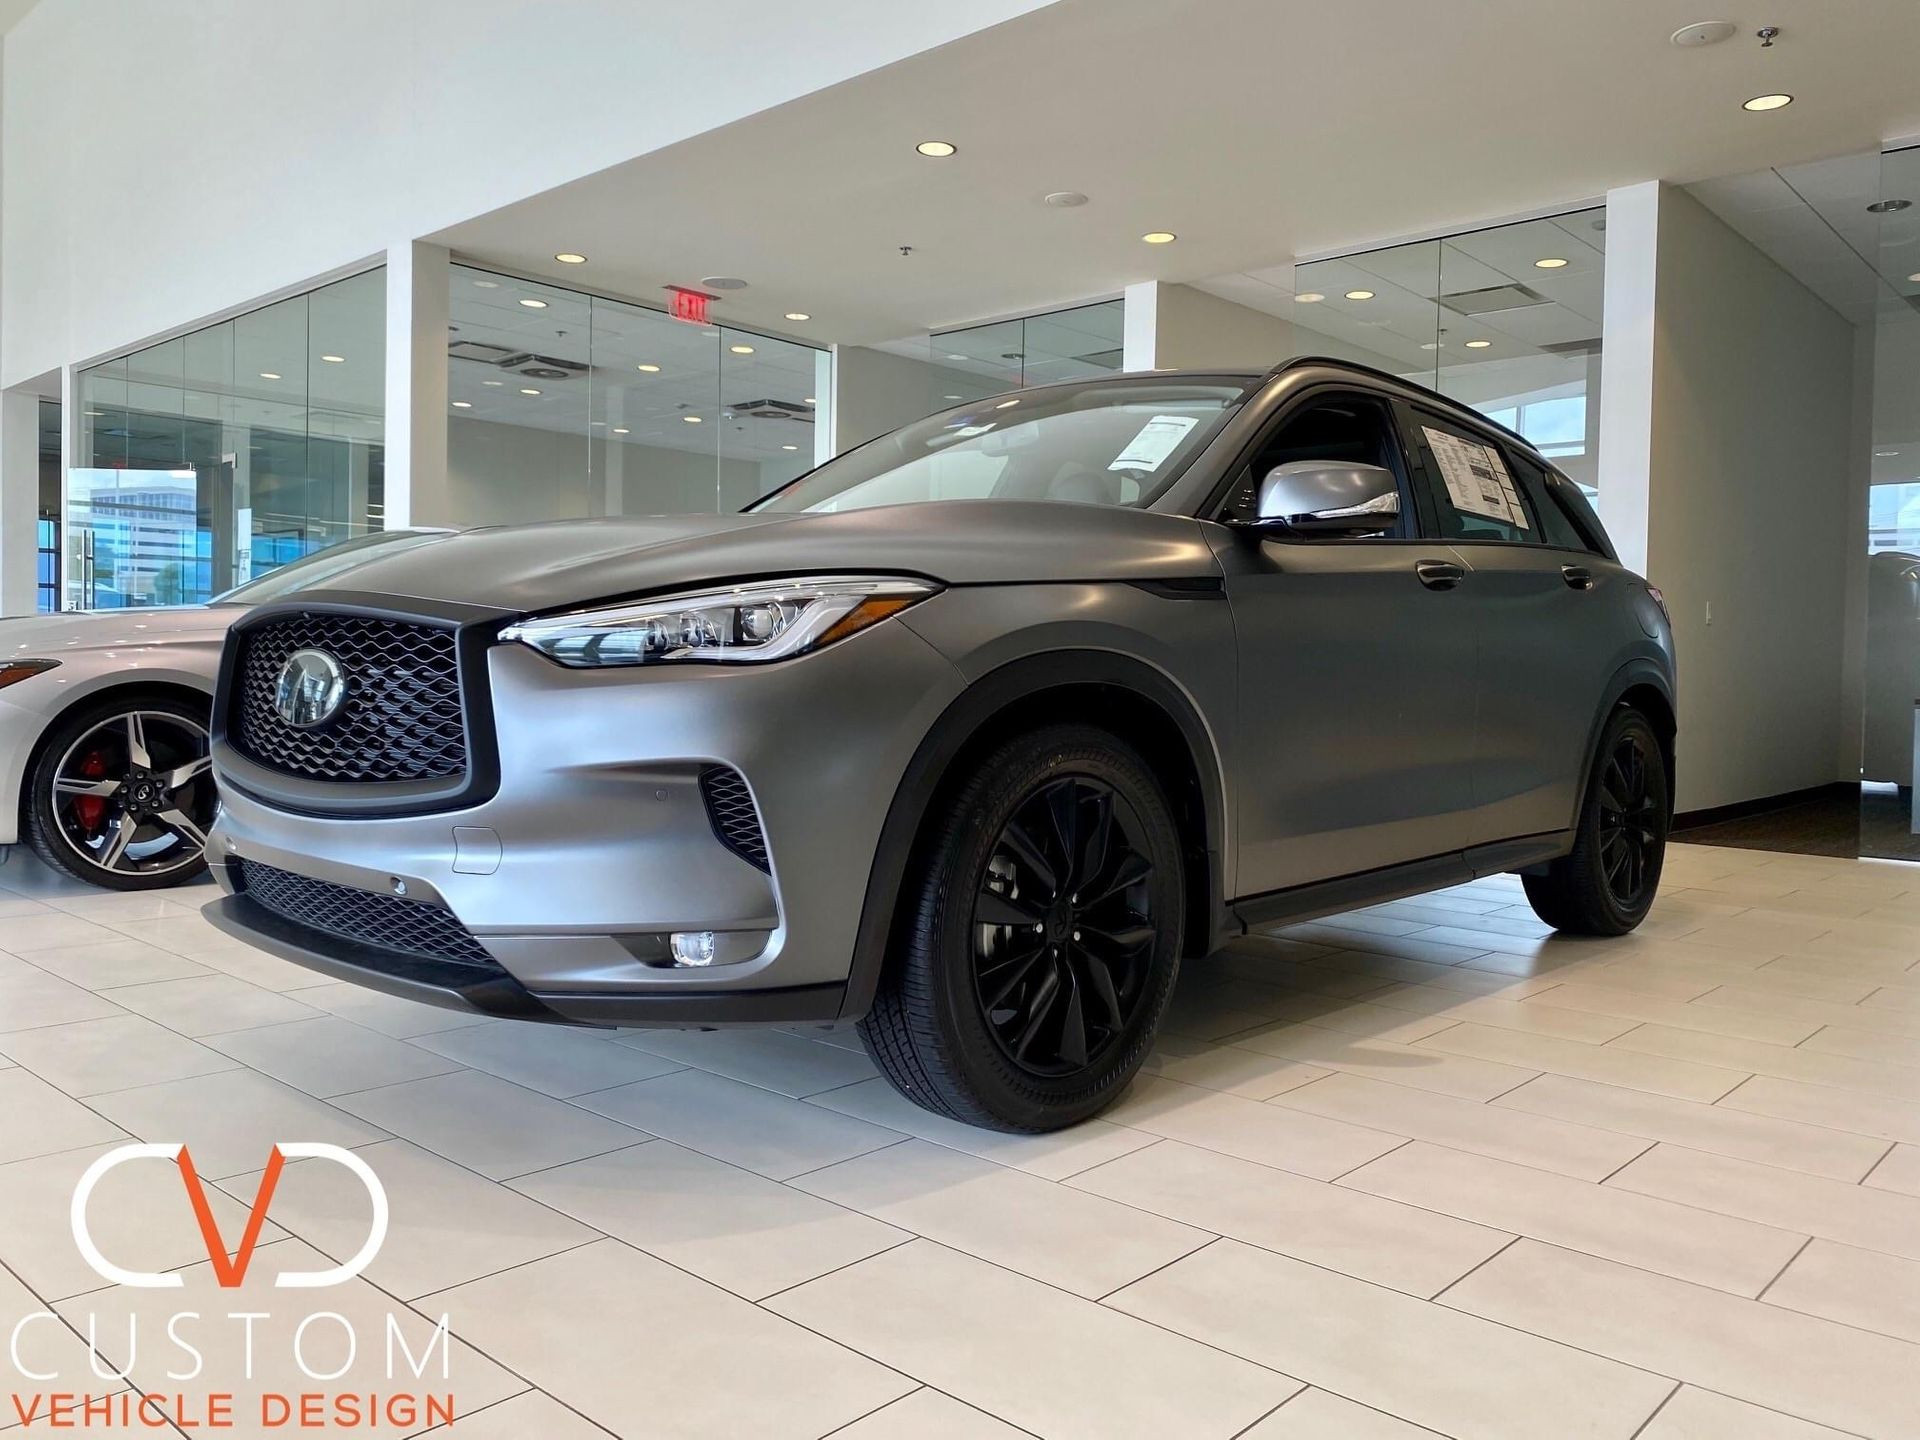 Infiniti QX50 with Matte blackout package done by CVD